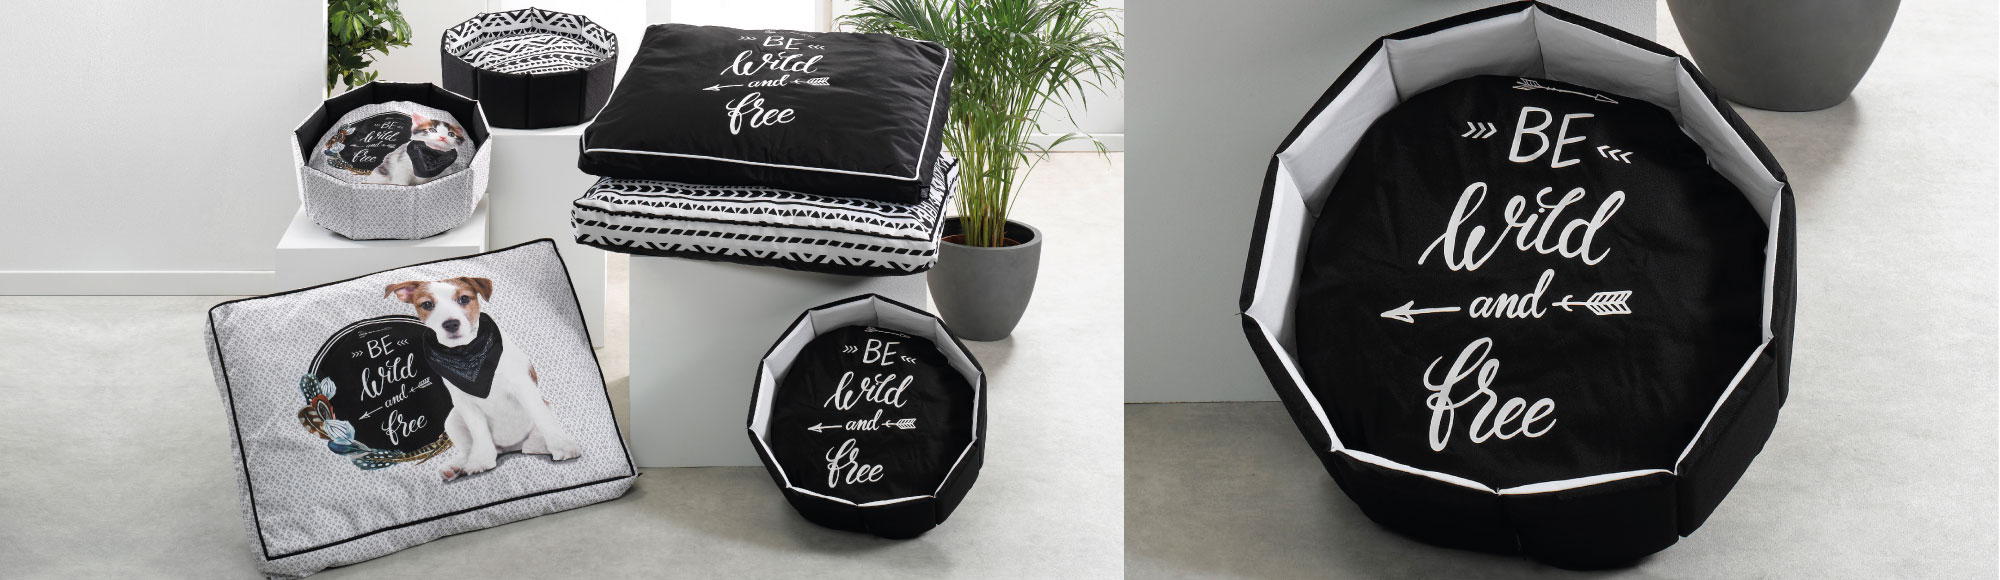 U10-love-story-pet range-dog-cushion-theme-2019-wild-and-free